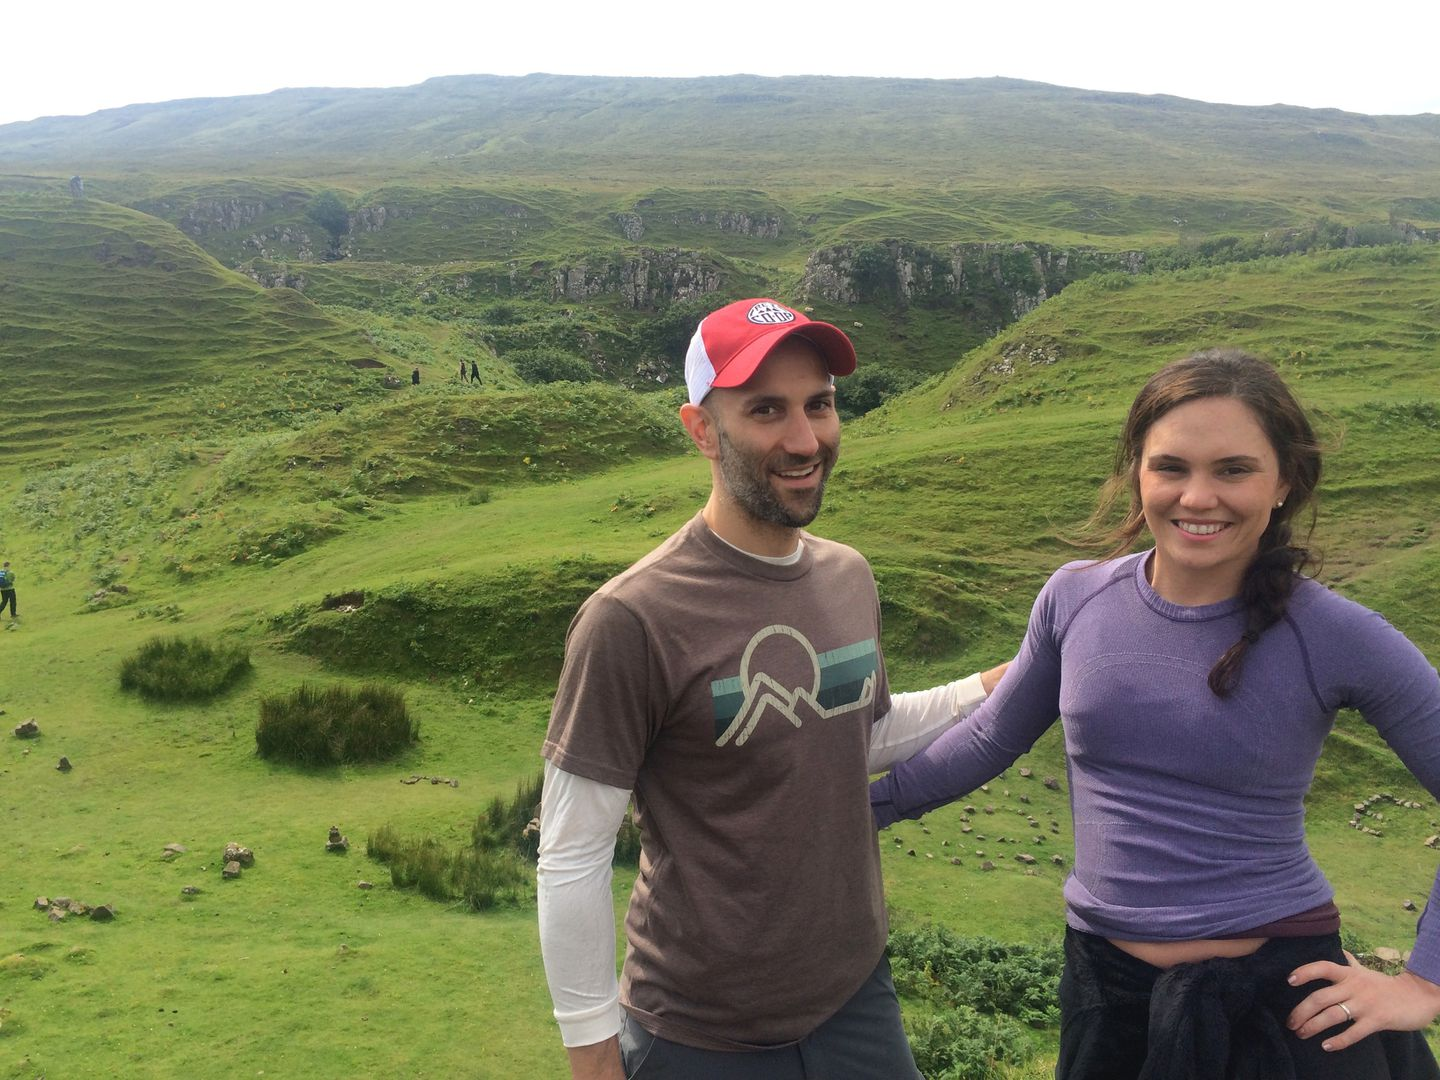 Peter and Laura hiking in the Scottish Highlands in 2015.